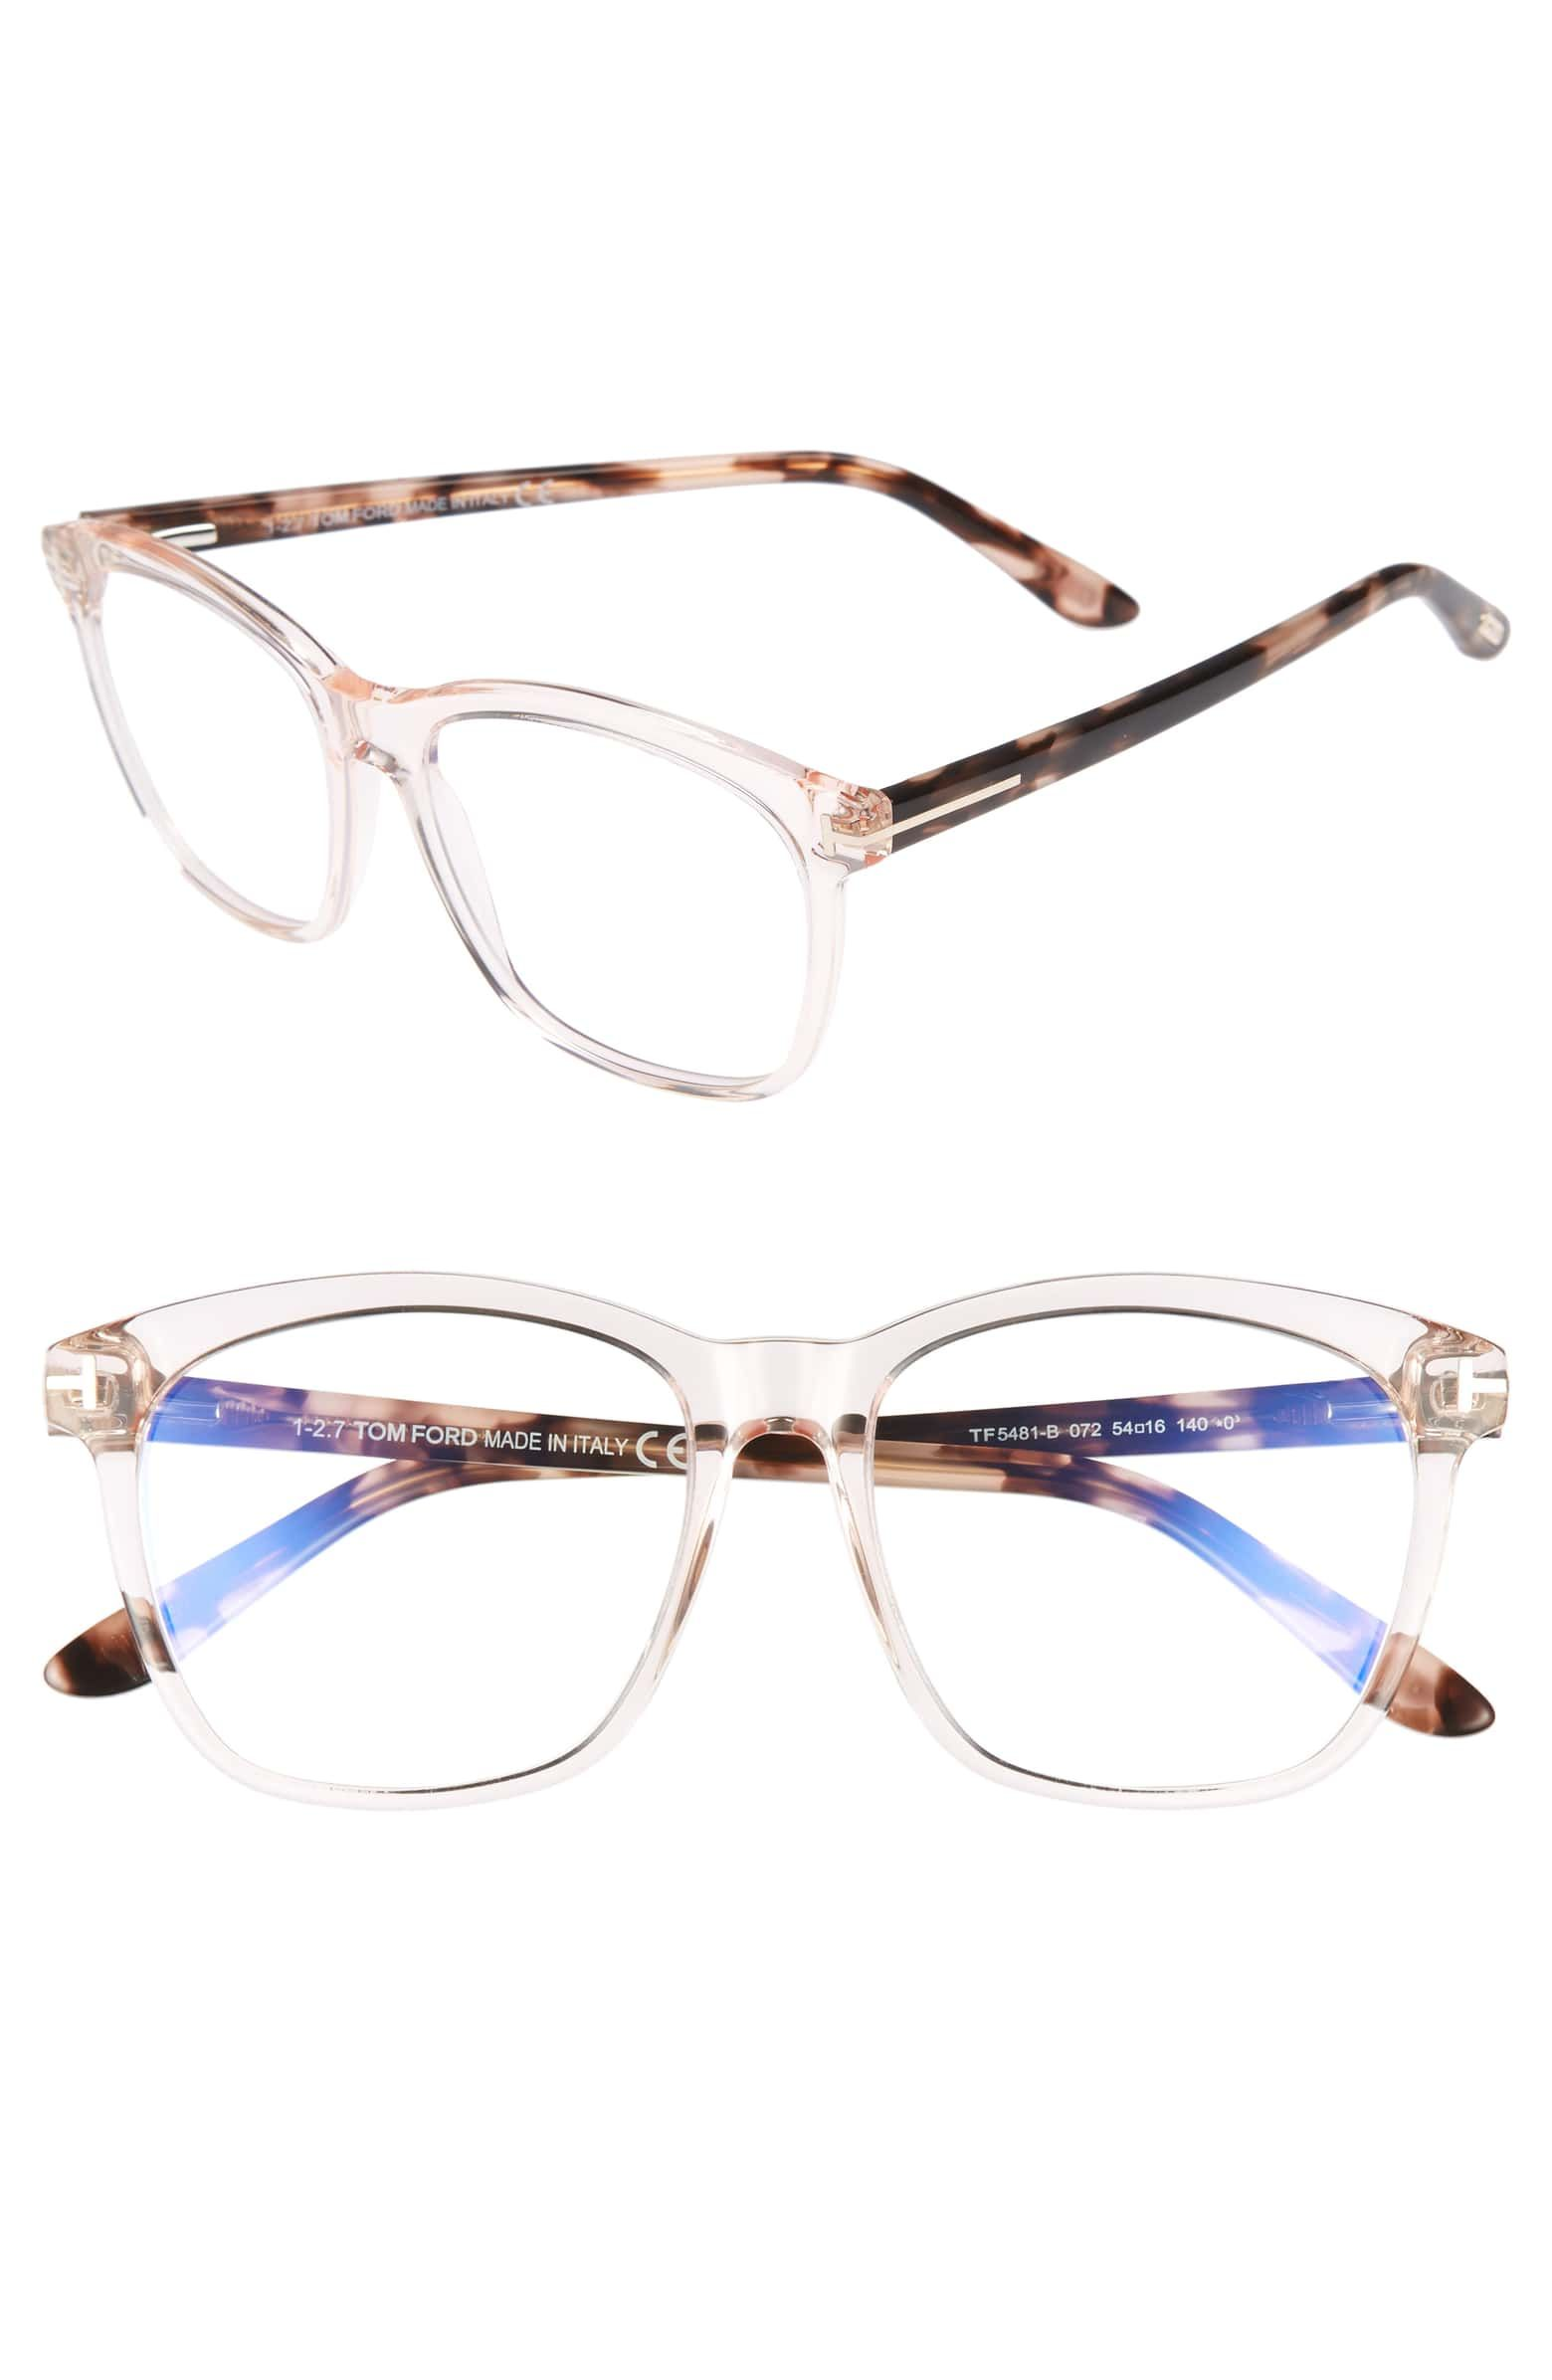 bdf99c82f1c5 54mm Blue Block Optical Glasses